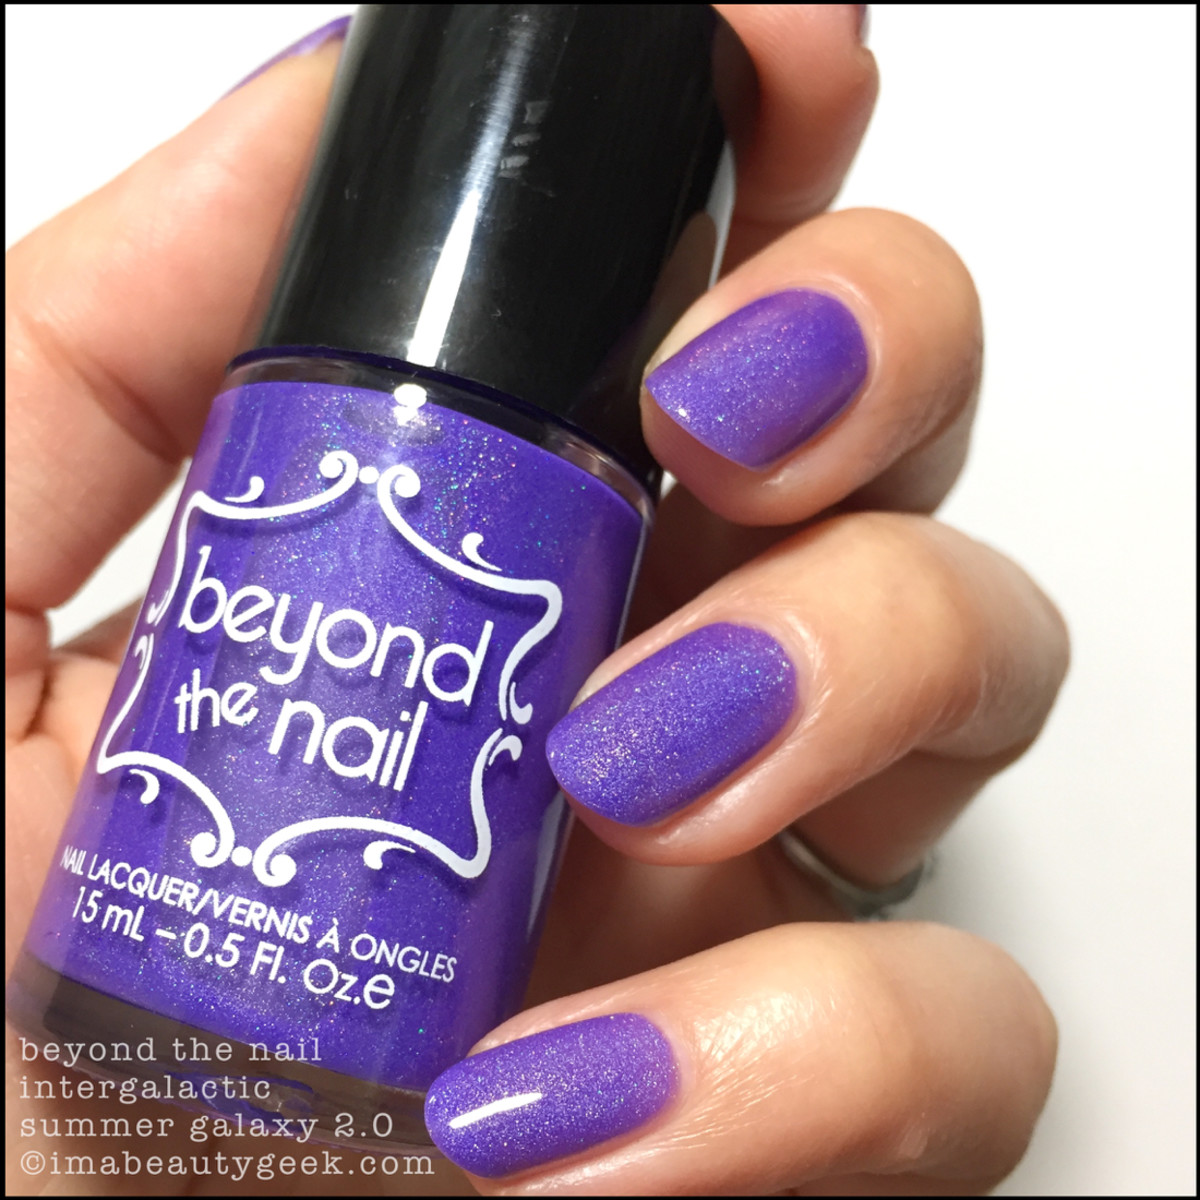 Beyond the Nail Intergalactic - Summer Galaxy 2.0 Collection 2017